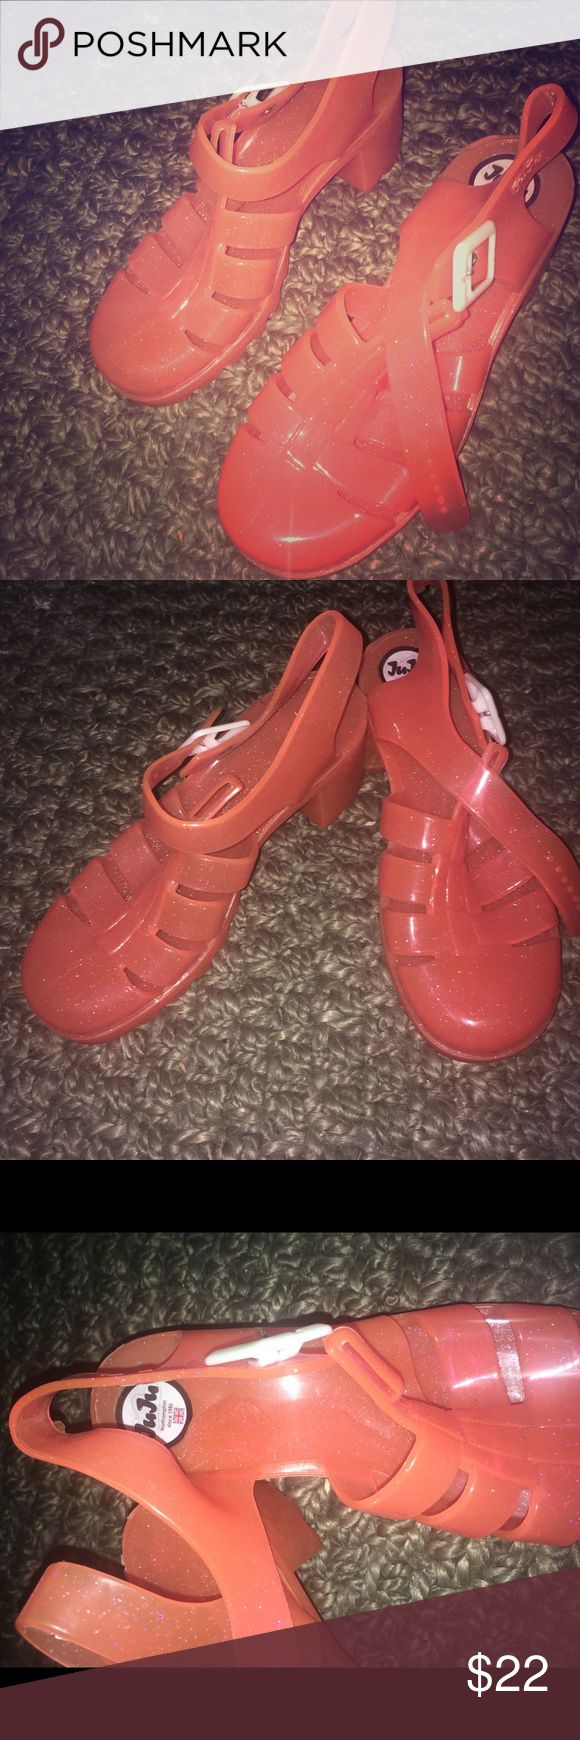 Juju jelly heels!!!! Worn once to a xmas party, but they don't fit. I ordered the wrong size.  So adorable jellies I would never get rid of if they fit JuJu Shoes Sandals